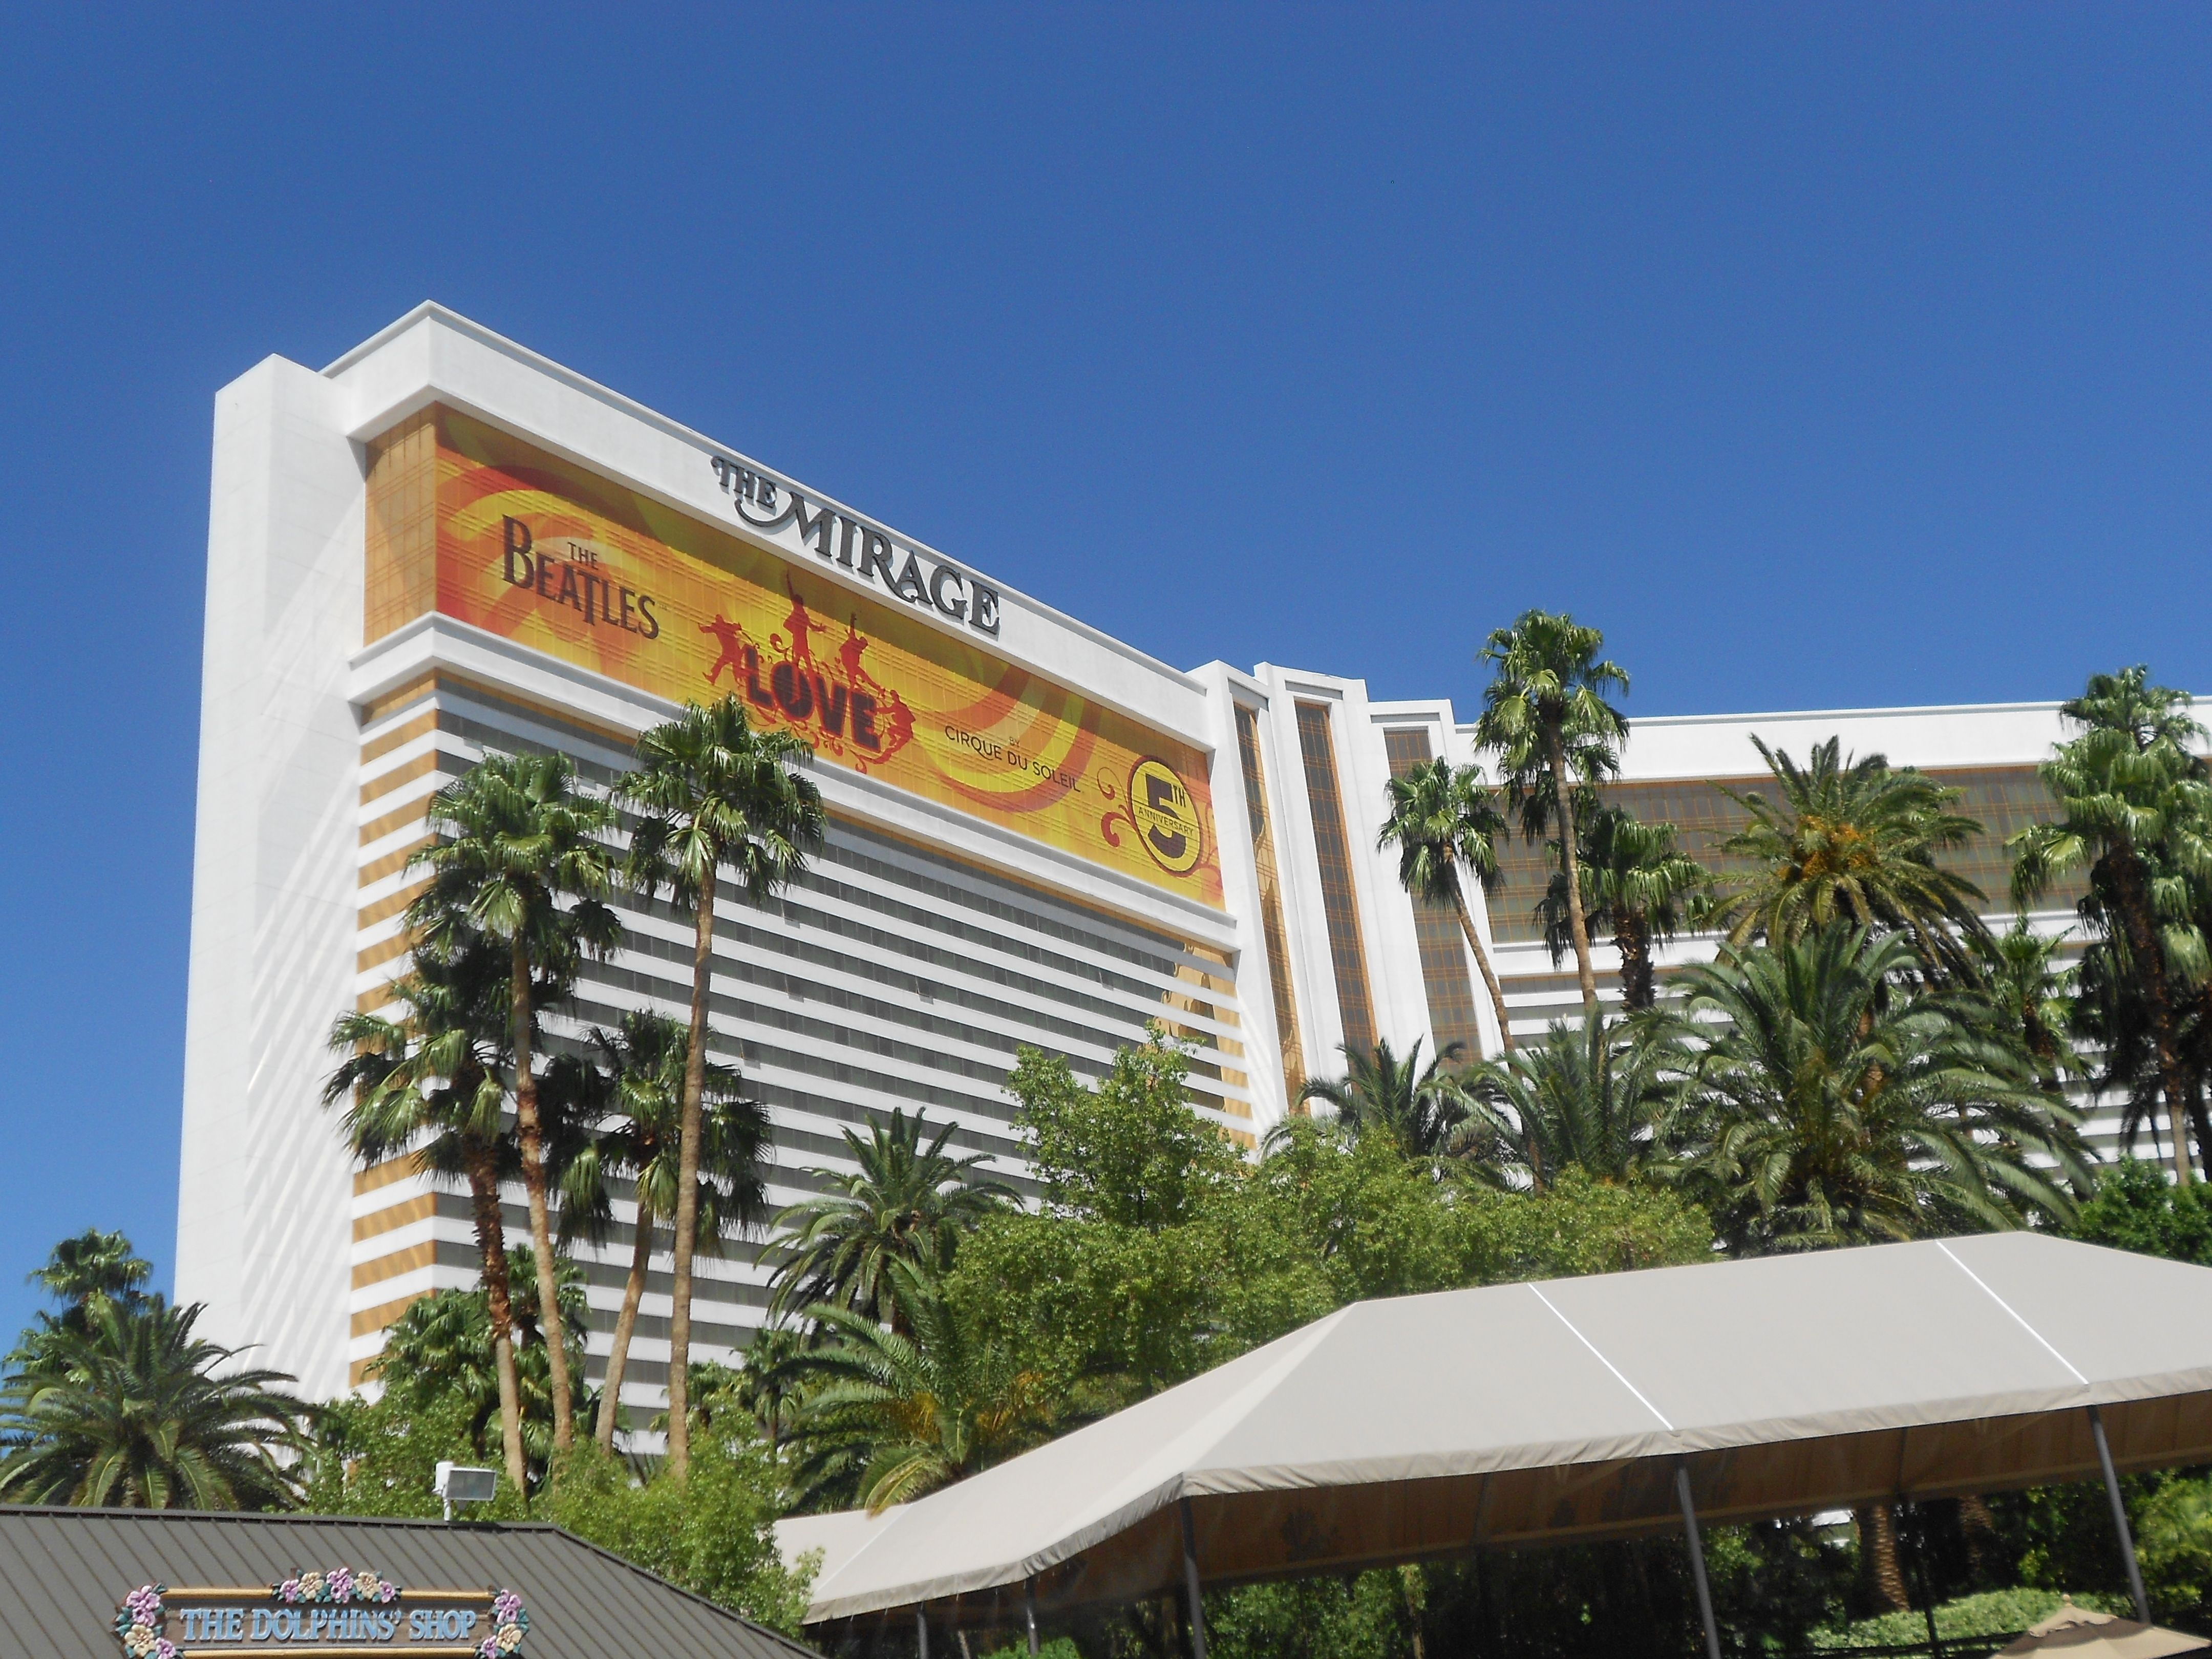 Hotels Mirage Las Vegas Nv